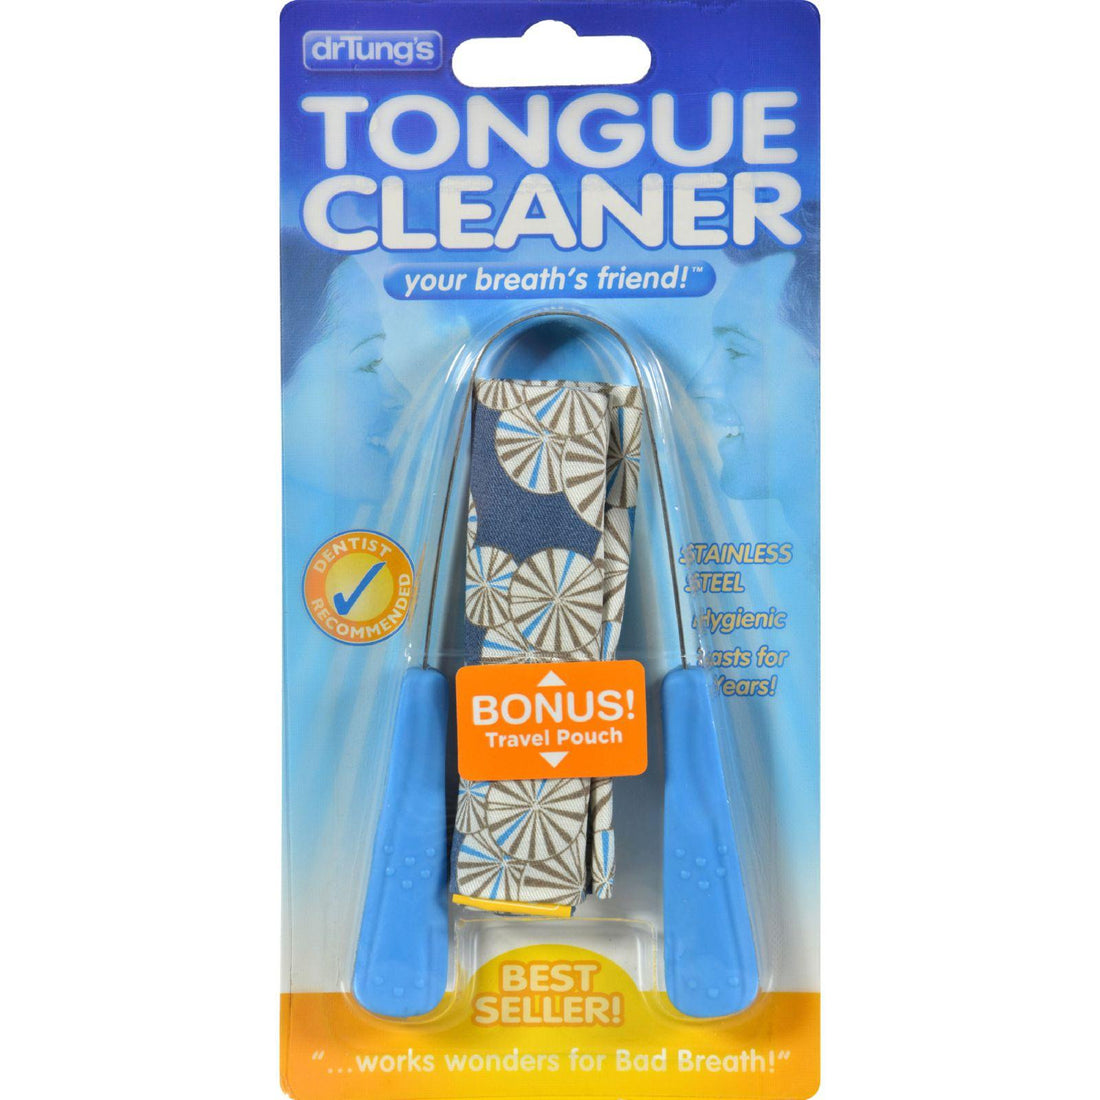 Mother Mantis: Dr. Tungs Stainless Steel Tongue Cleaner - 1 Tongue Cleaner - Case Of 12 Dr. Tung's